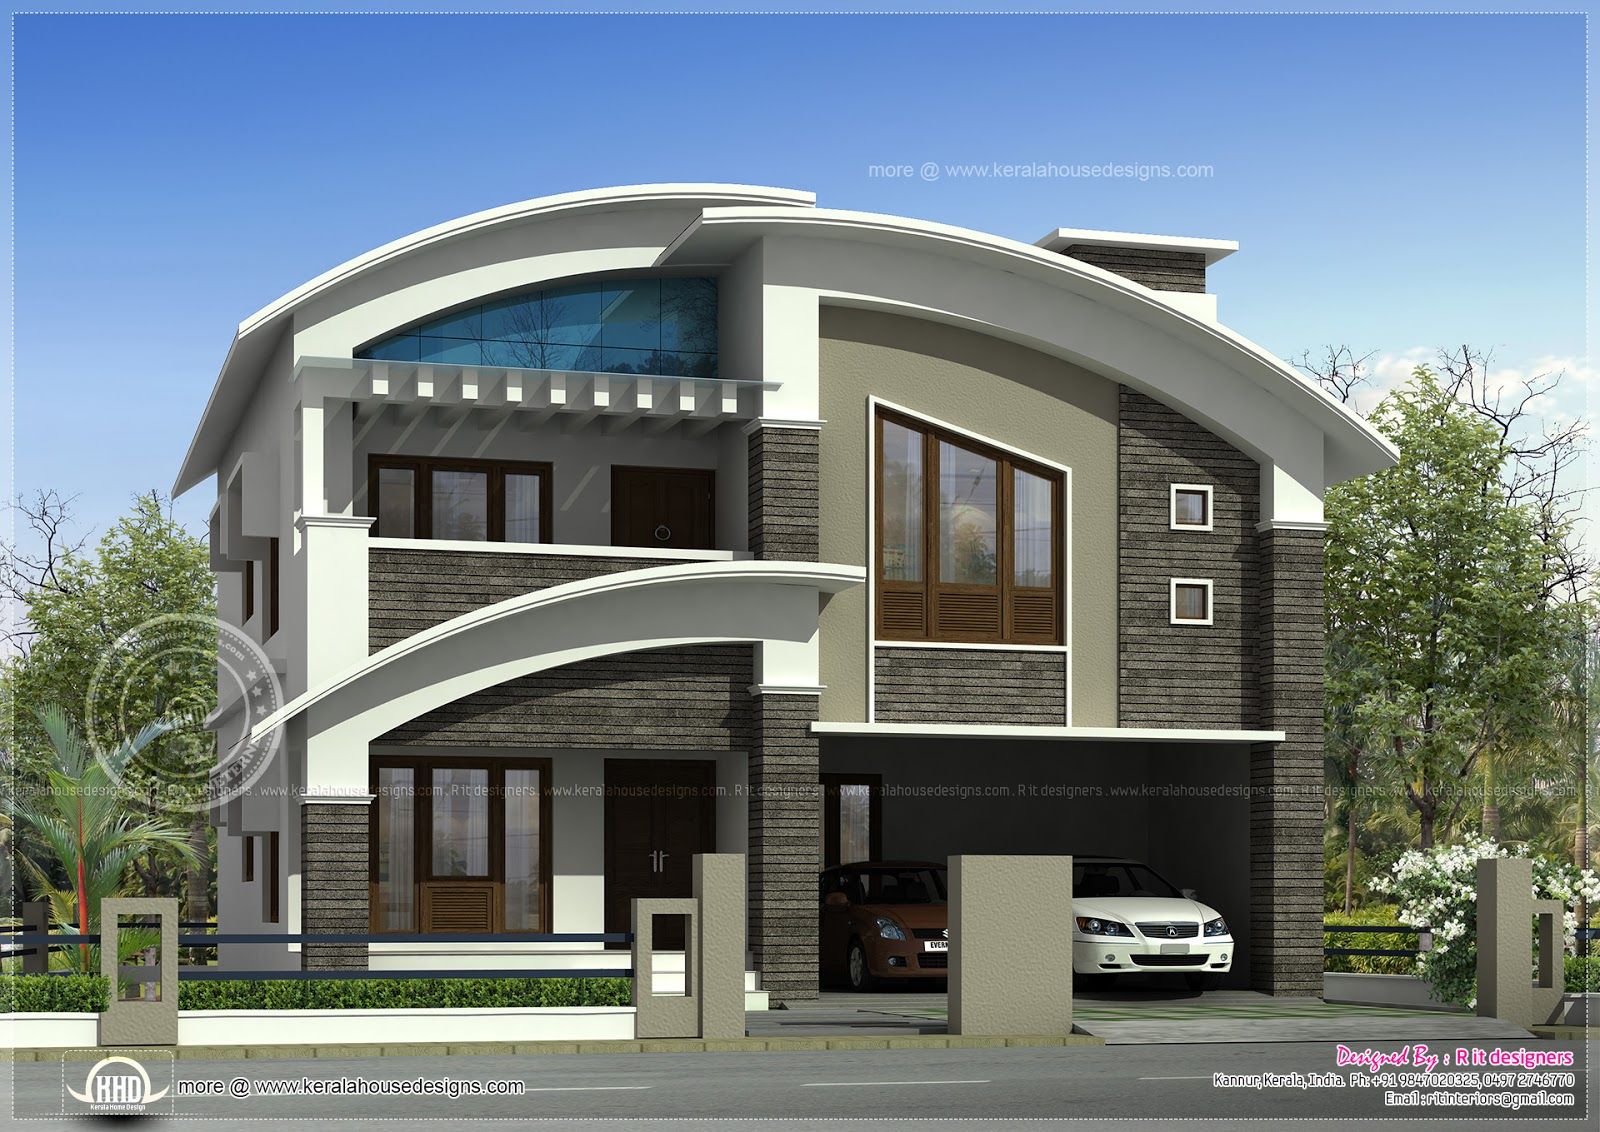 2568 square feet modern villa exterior kerala home design and floor plans - Modern villa designs ...